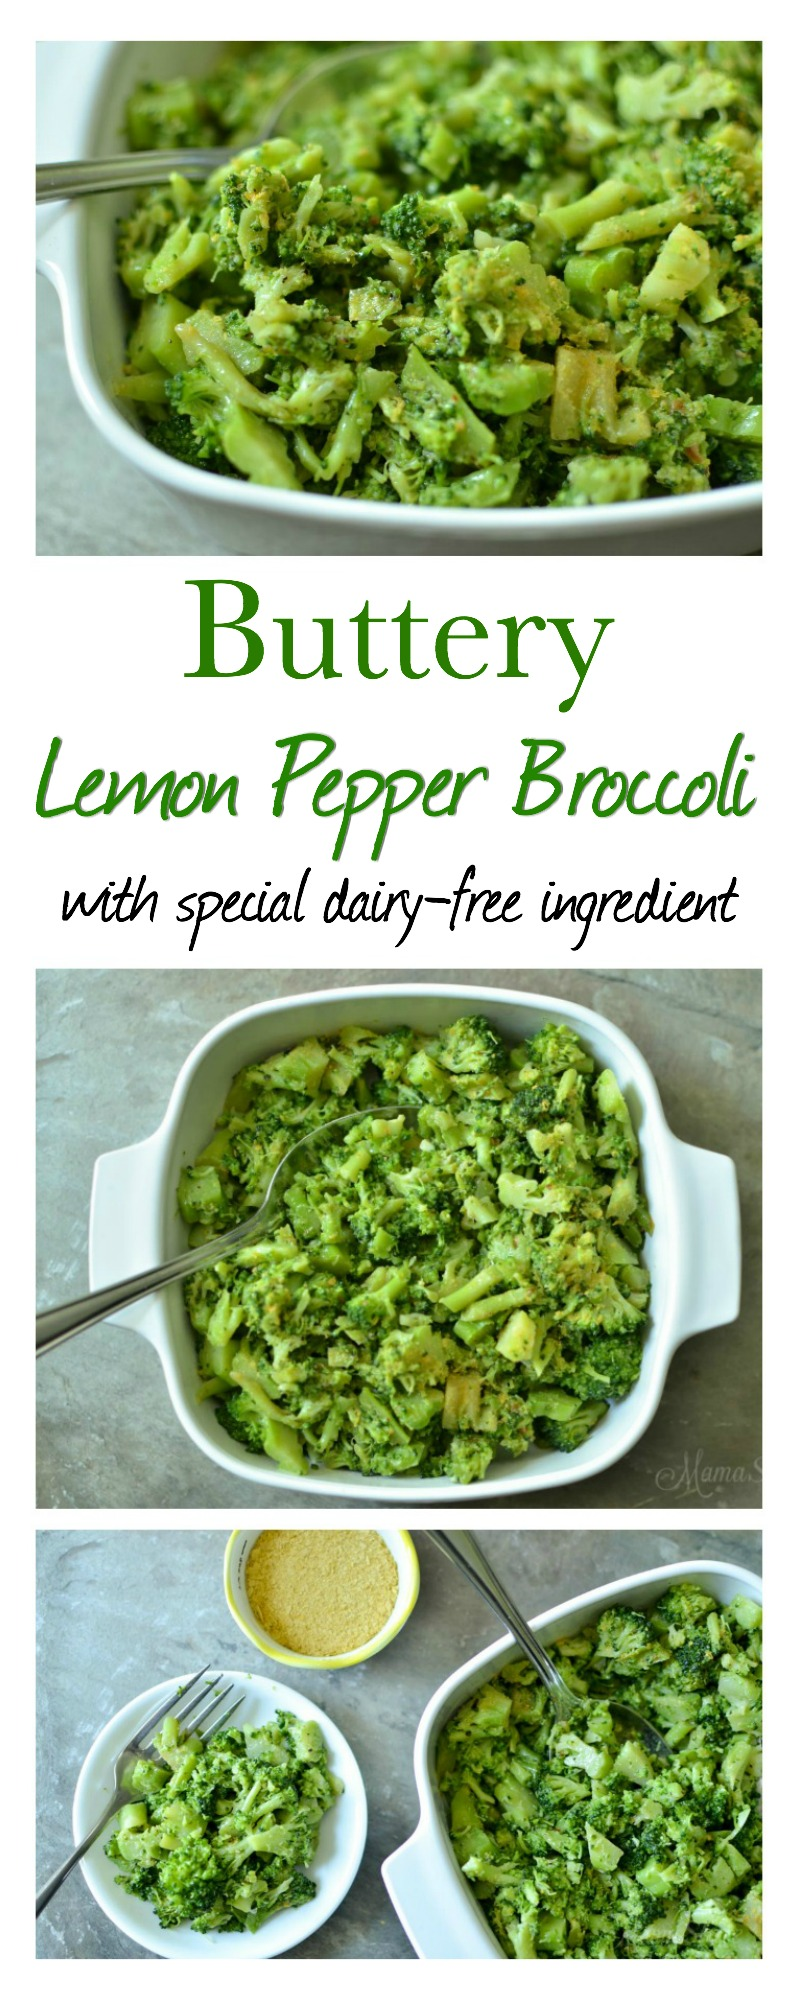 Buttery Lemon Pepper Broccoli - Dairy-Free